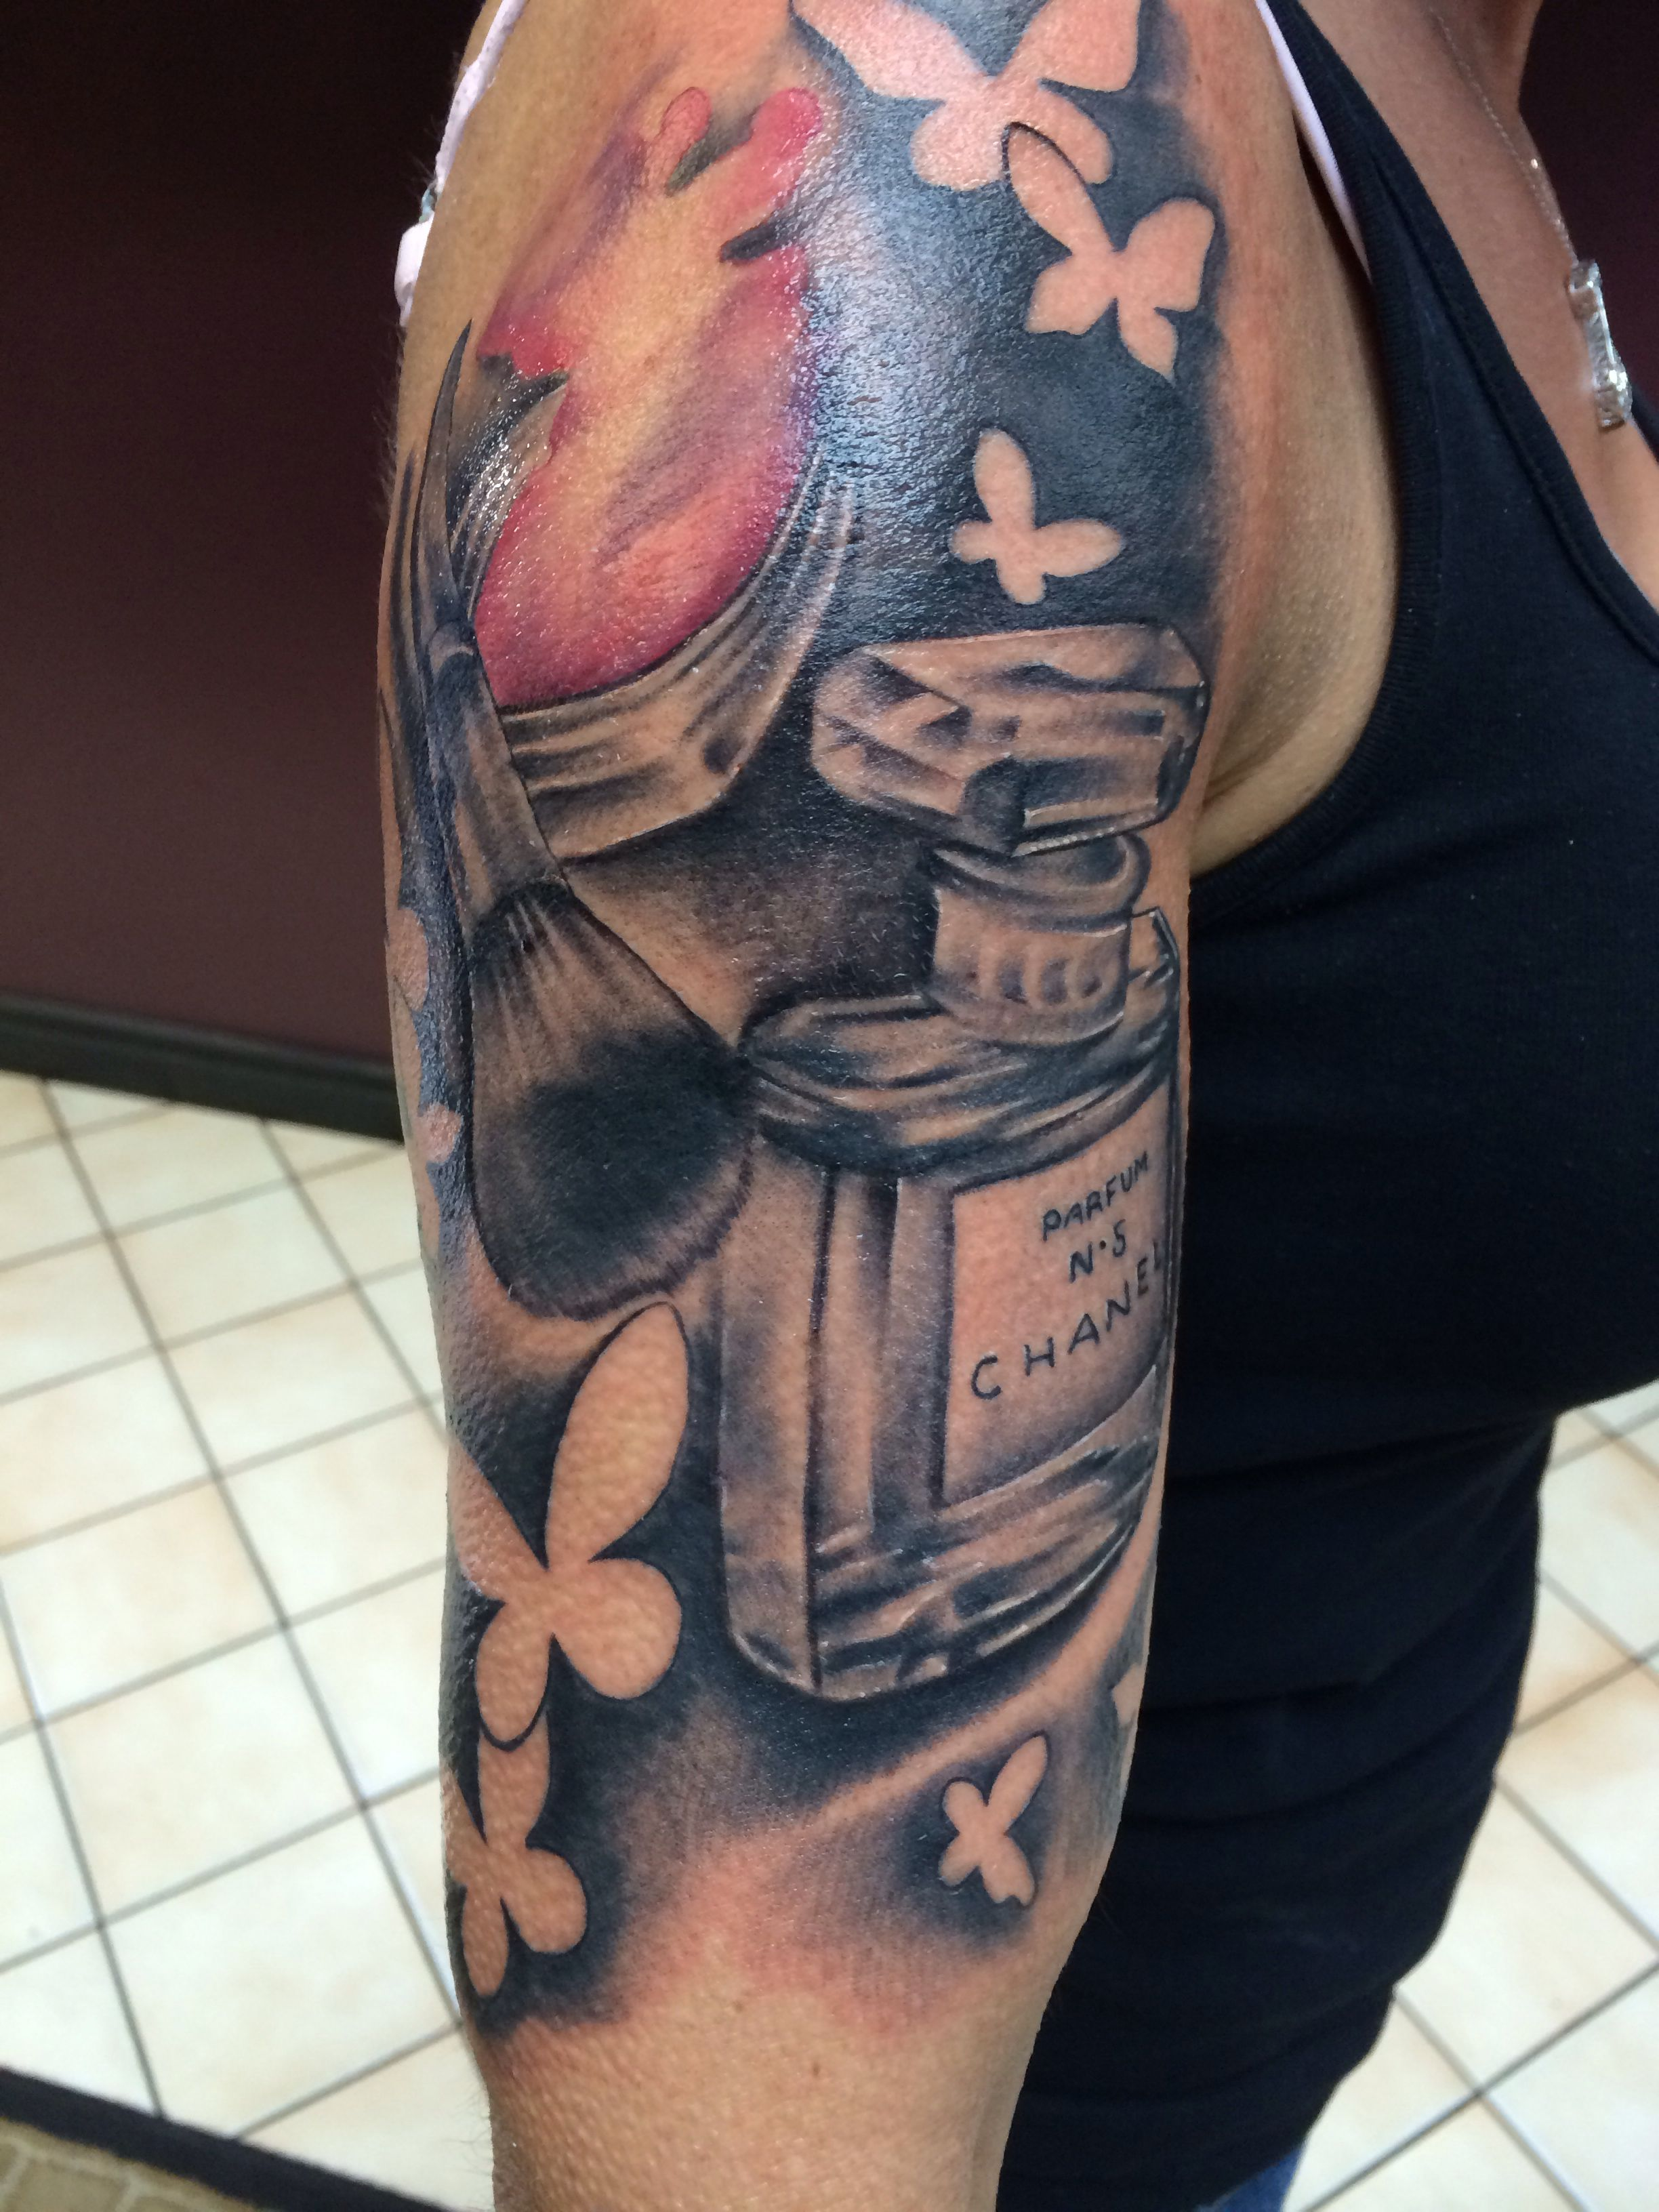 712d1f86efef0 Sombra at Aztec ink in Elizabeth nj | Tattoo ideas | Tattoos, Skull, Ink